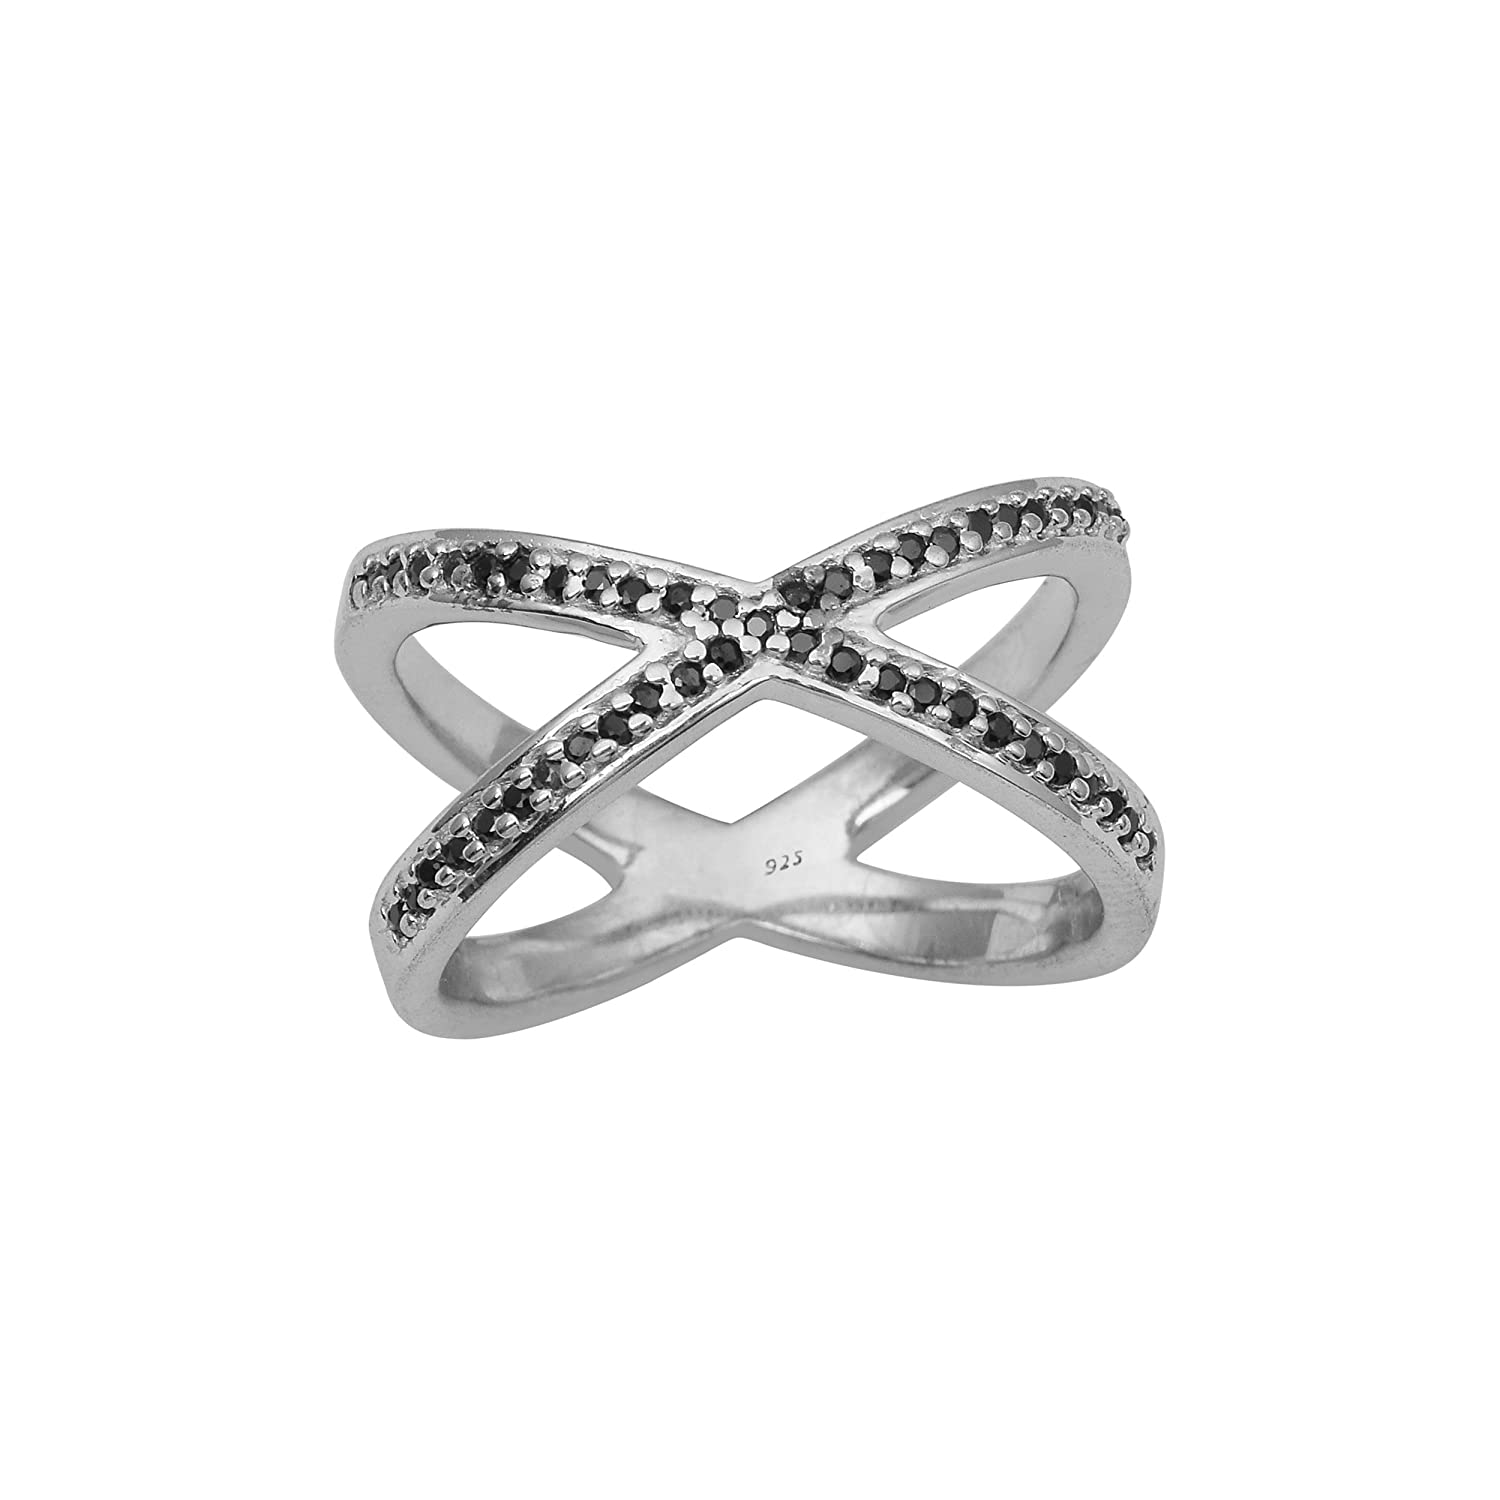 Criss Cross Black Spinel Gemstone 925 Sterling Silver Wedding Stacable Band Ring